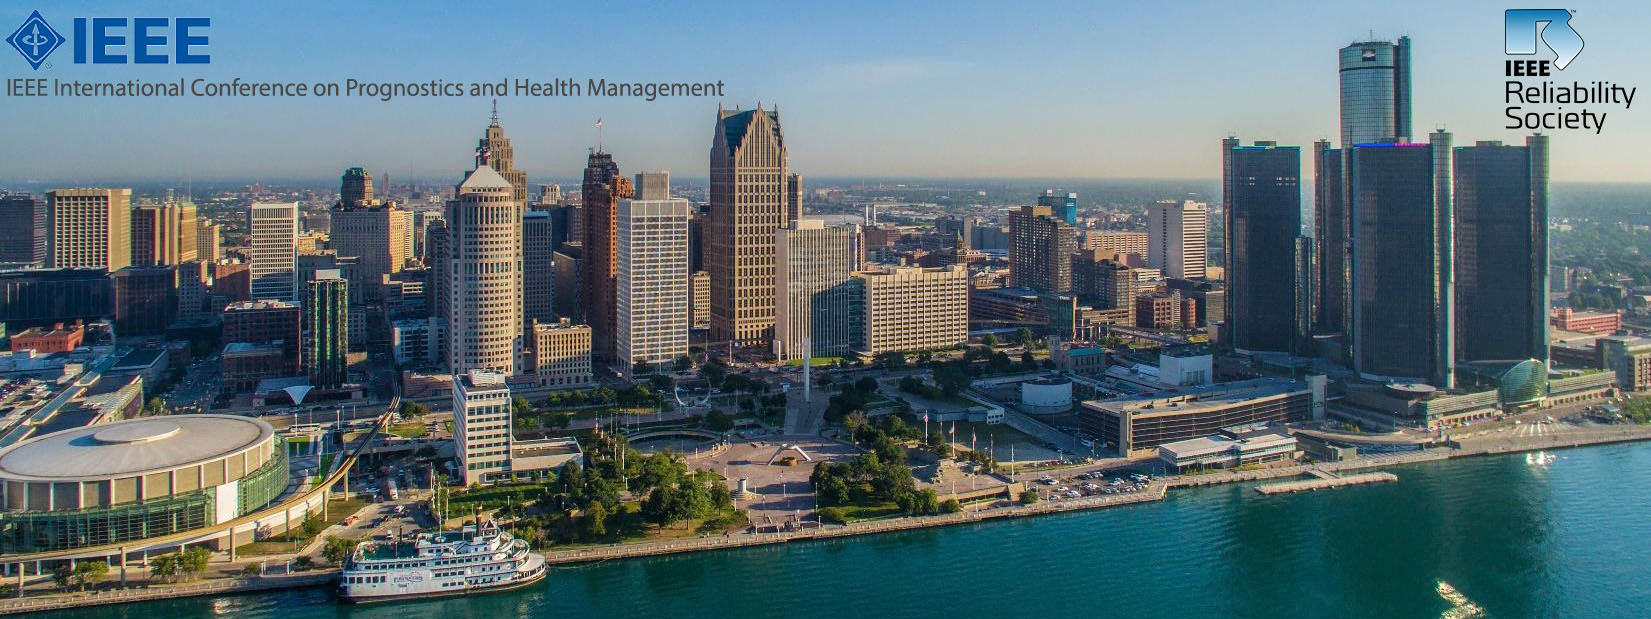 2020 IEEE International Conference on Prognostics and Health Management (ICPHM)